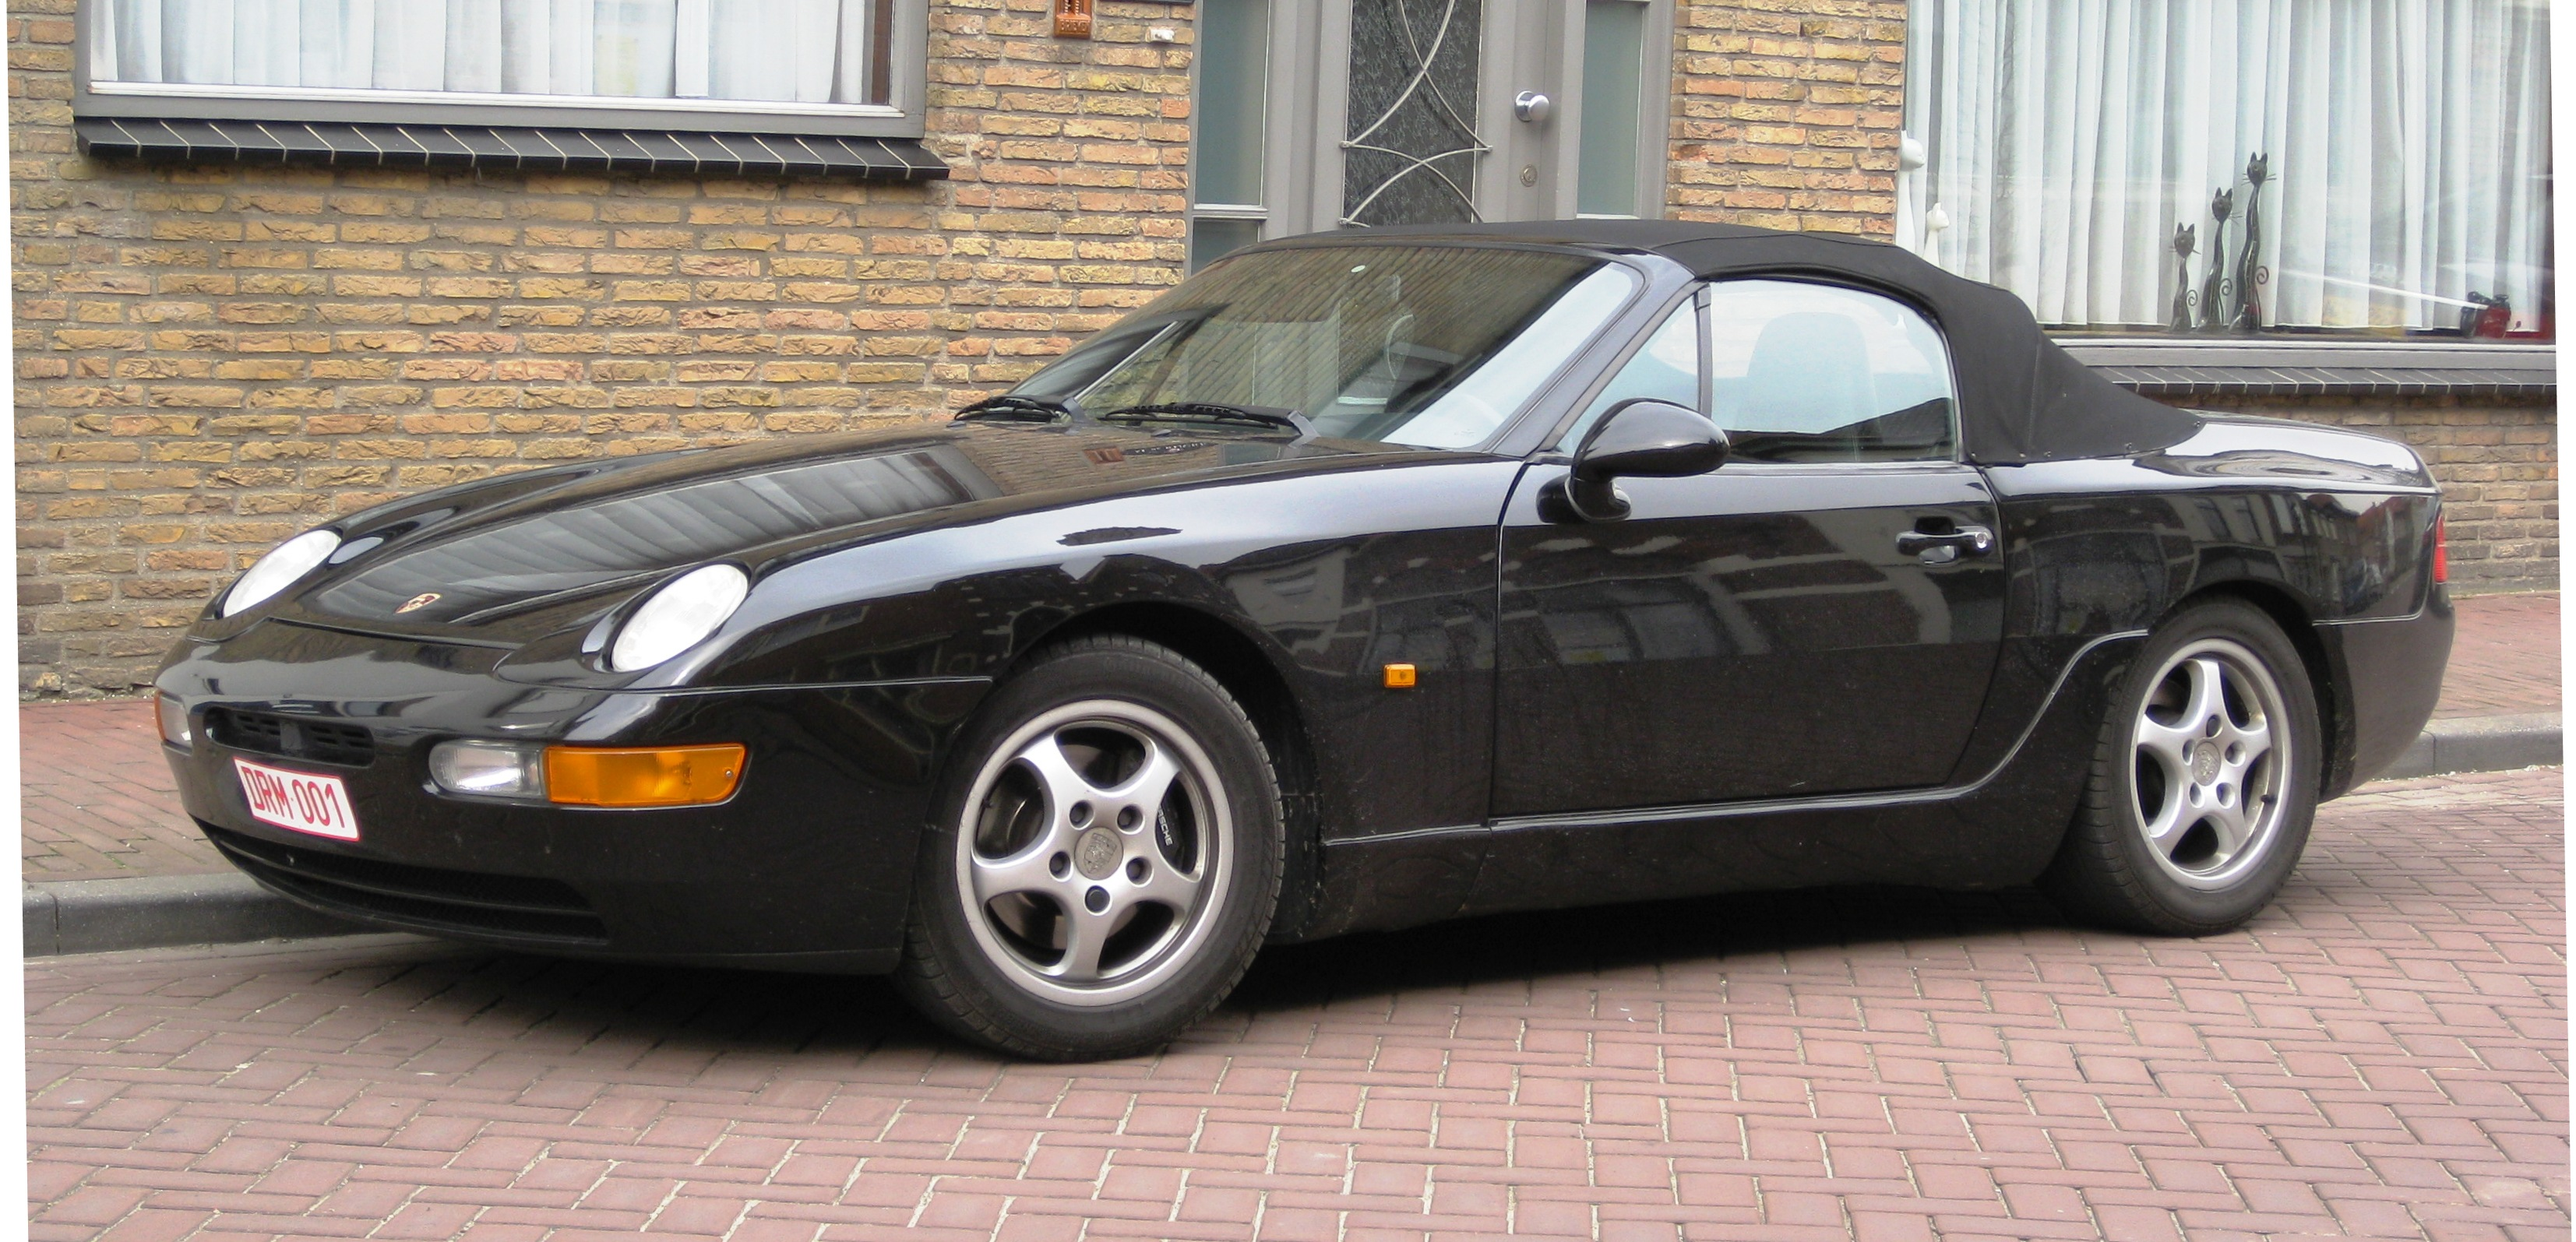 file:porsche 968 cabriolet front three quarters aardenburg